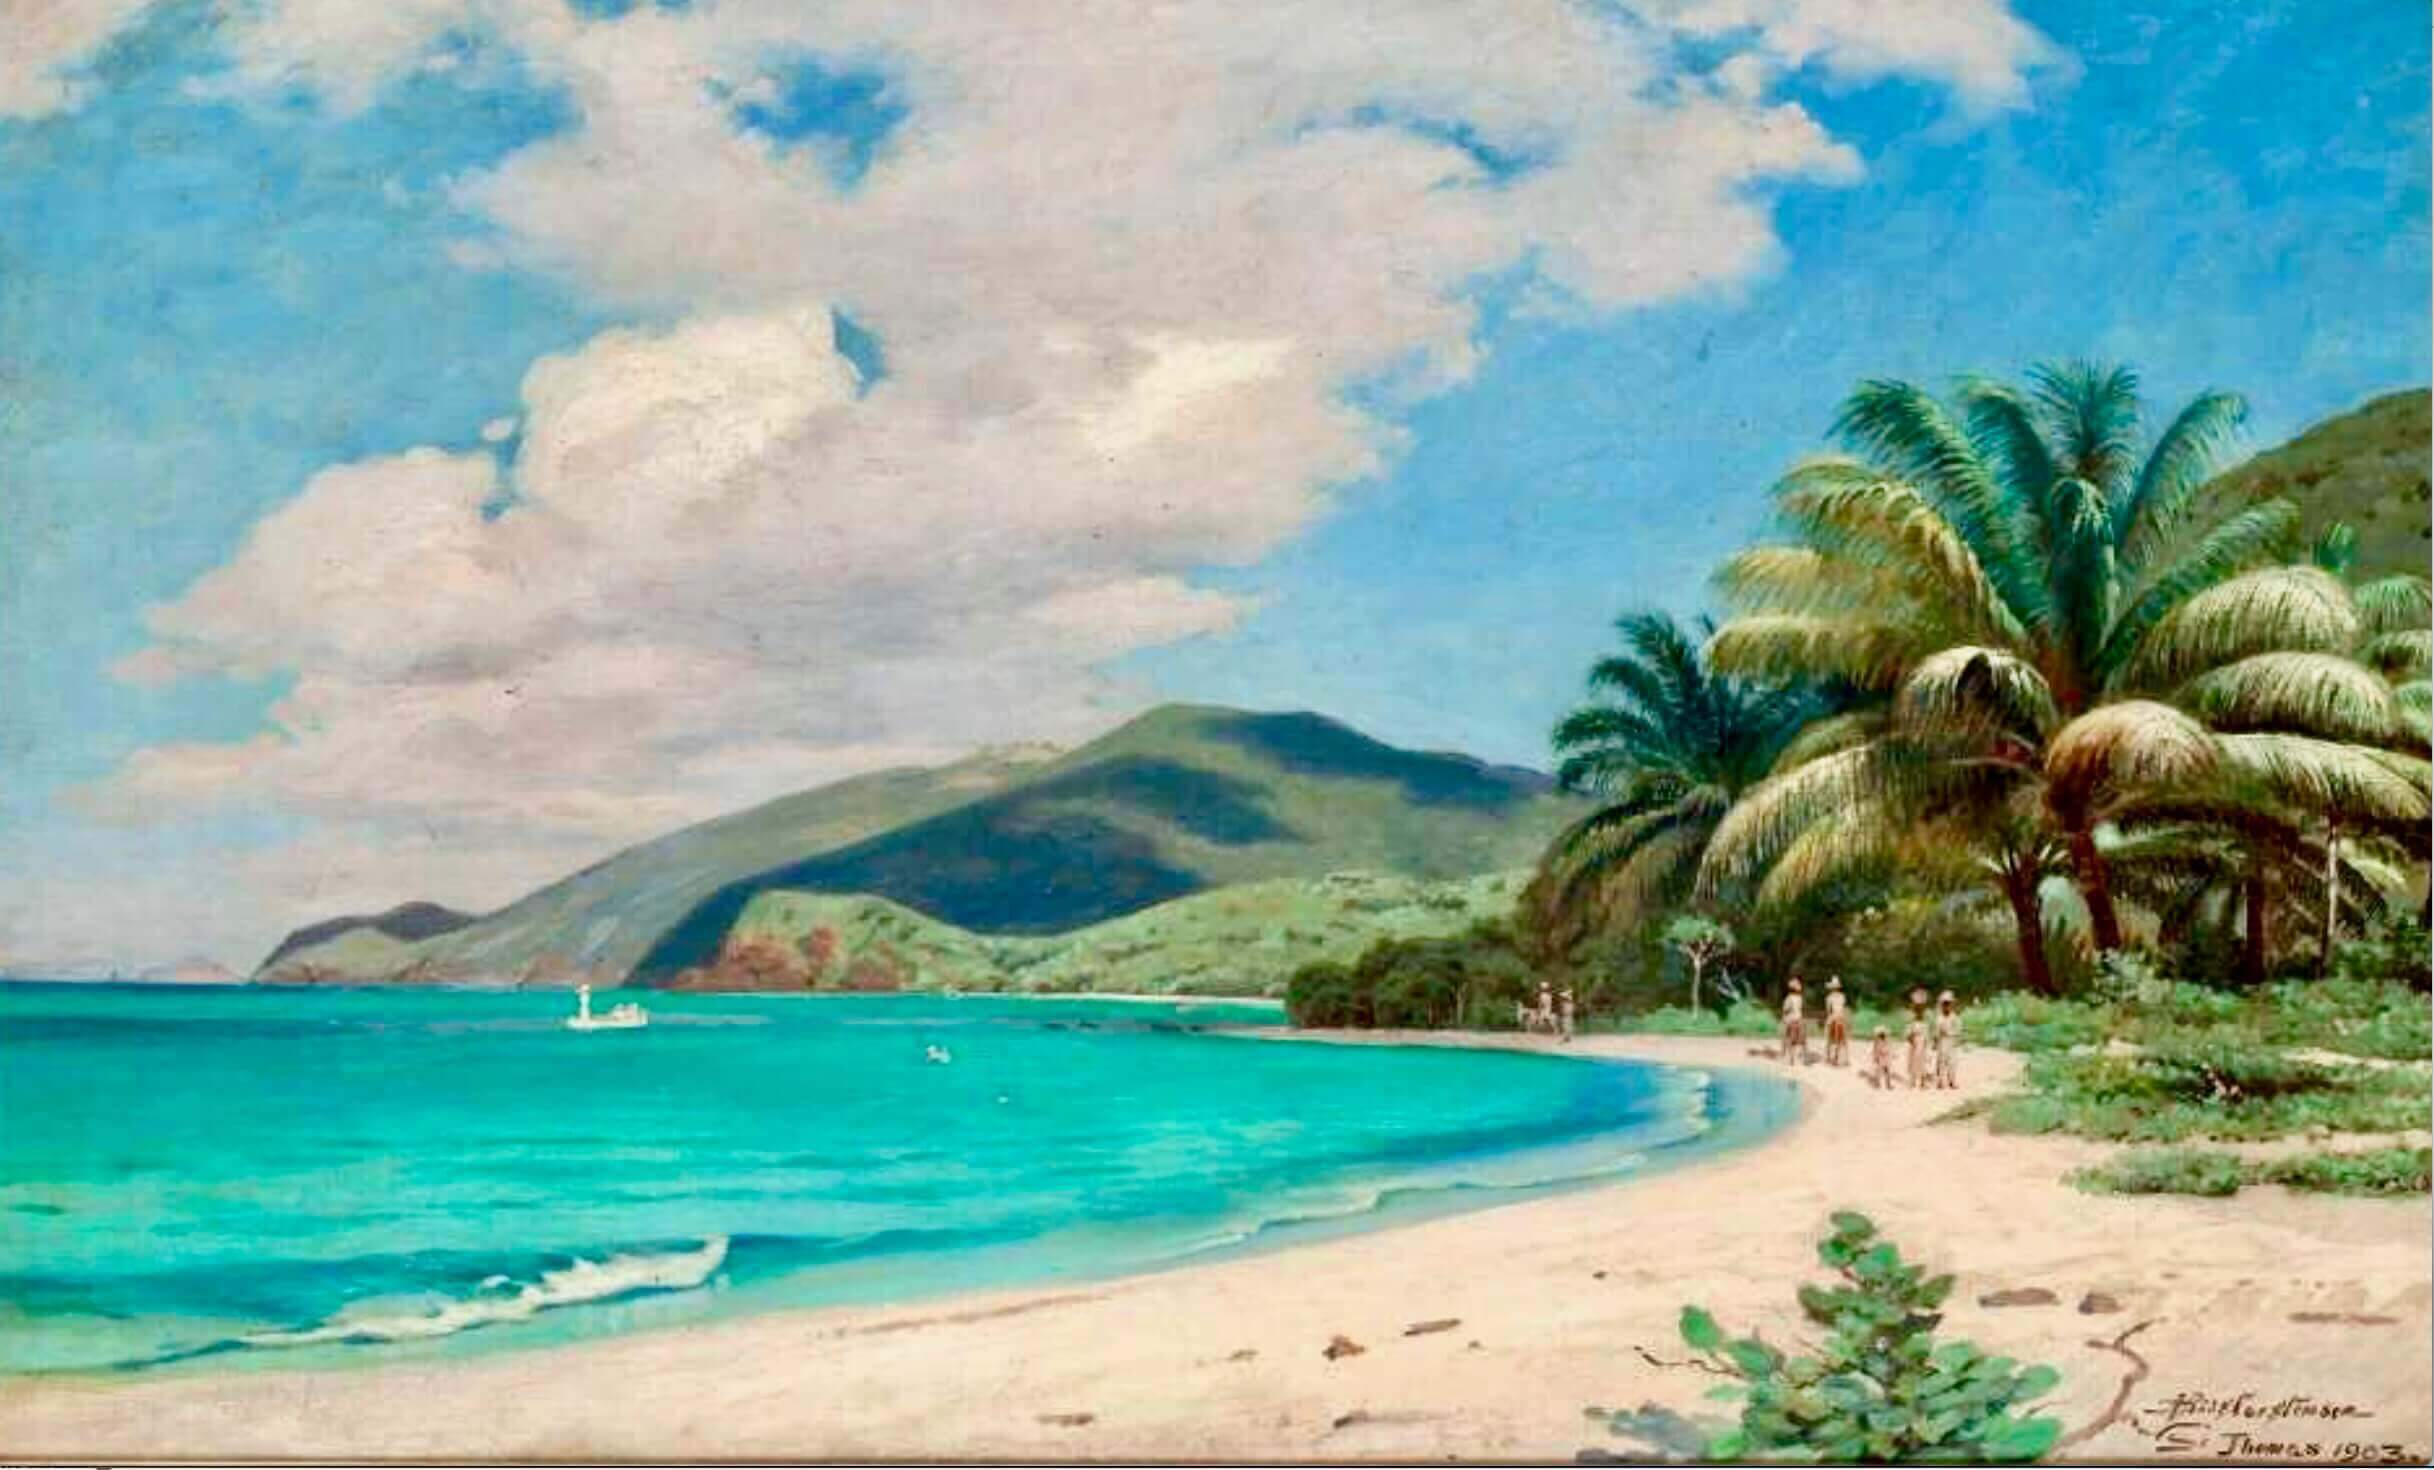 Beautiful Painting by Riis Carstensen of St. Thomas, Danish West Indies